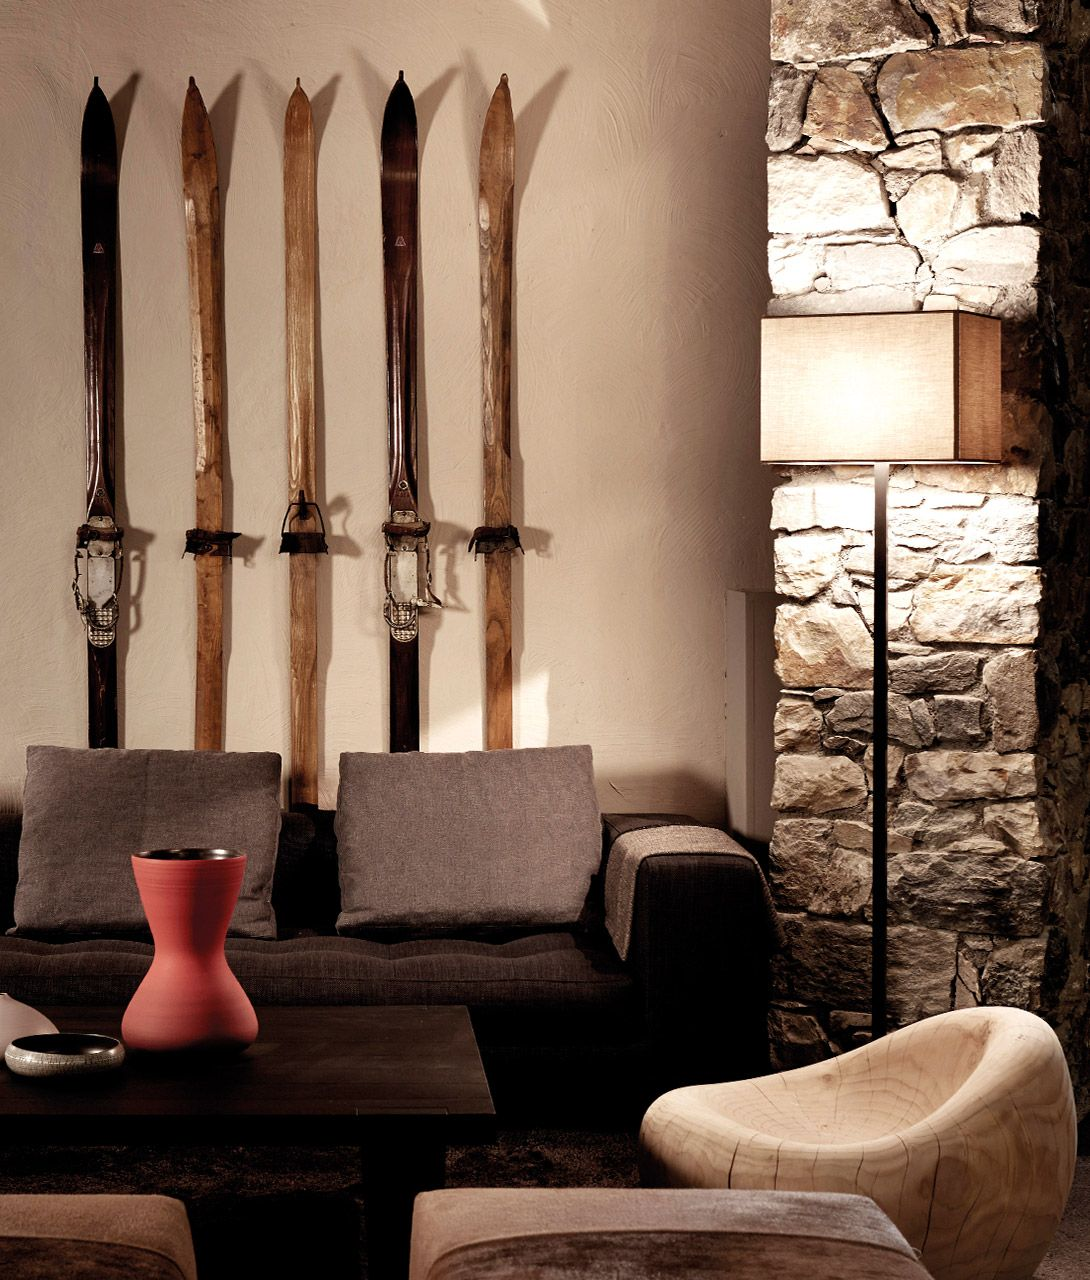 Le Fitz Roy Interior in Val Thorens